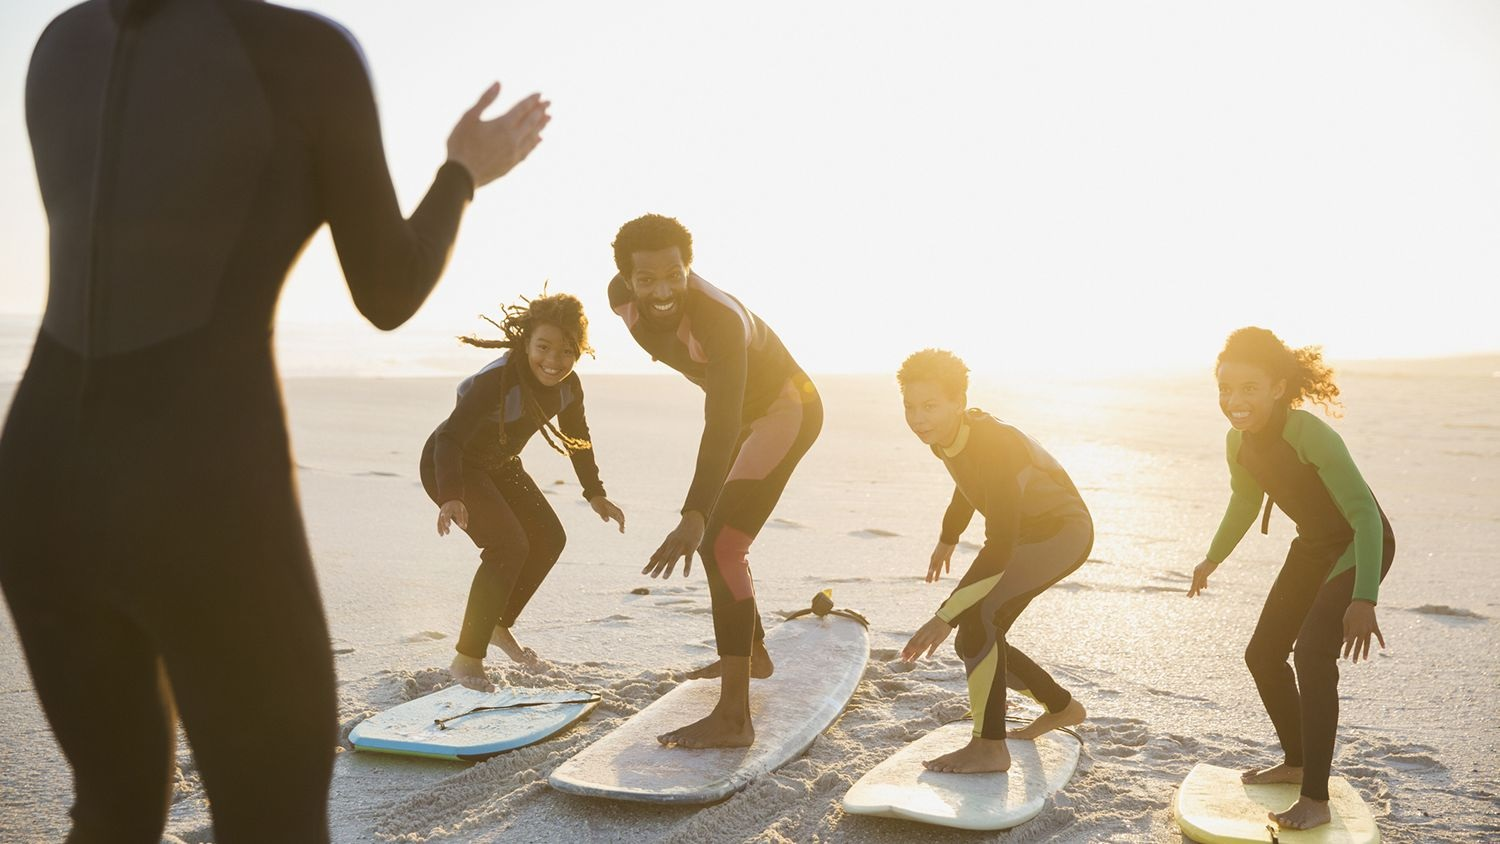 Selecting the Best Surf Board is Important